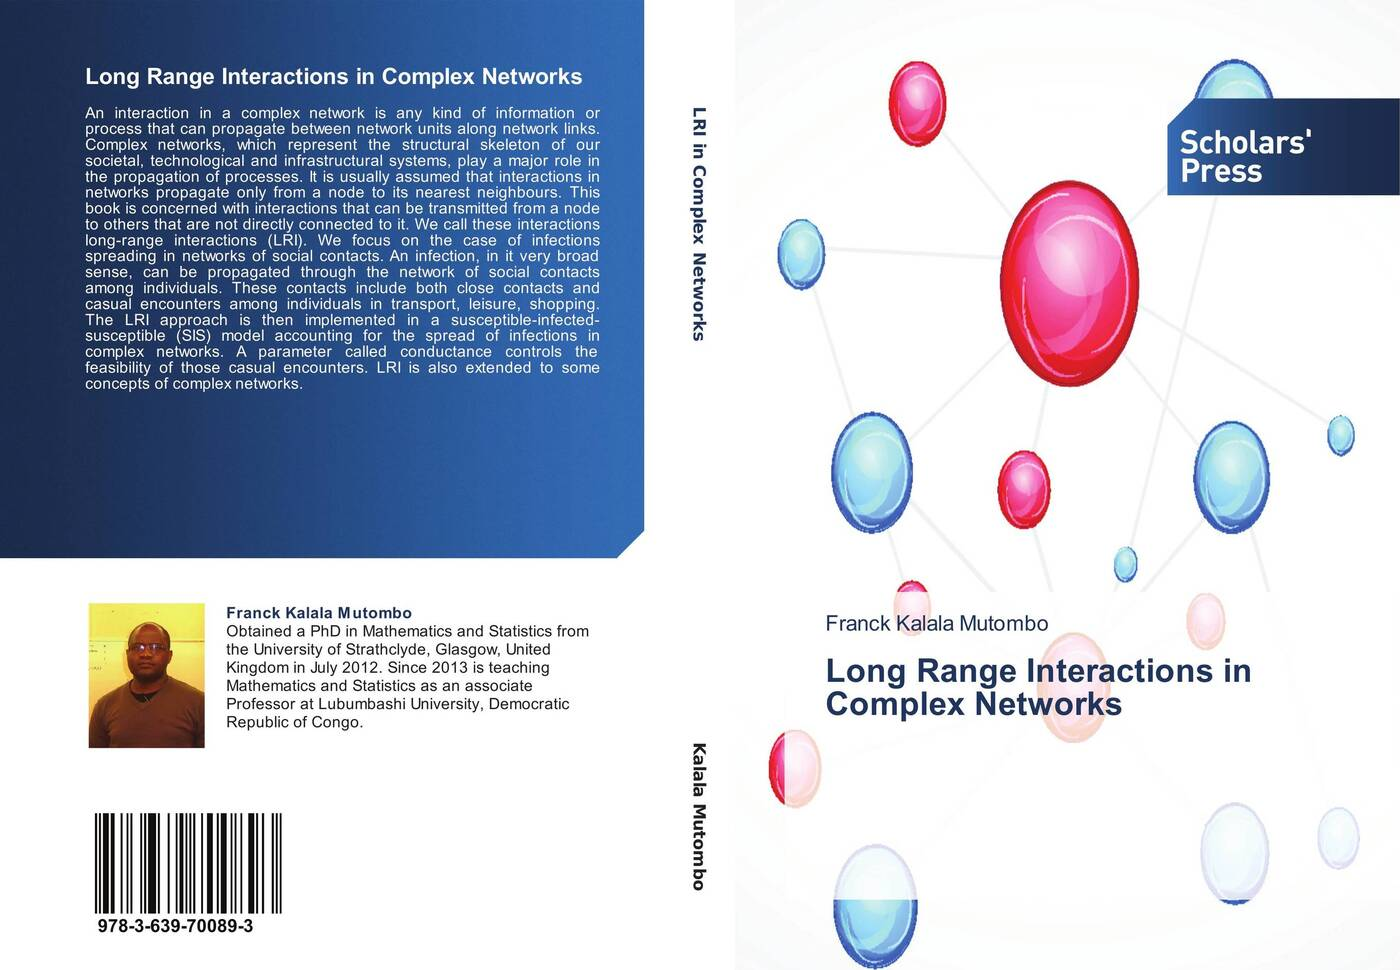 Franck Kalala Mutombo Long Range Interactions in Complex Networks contacts